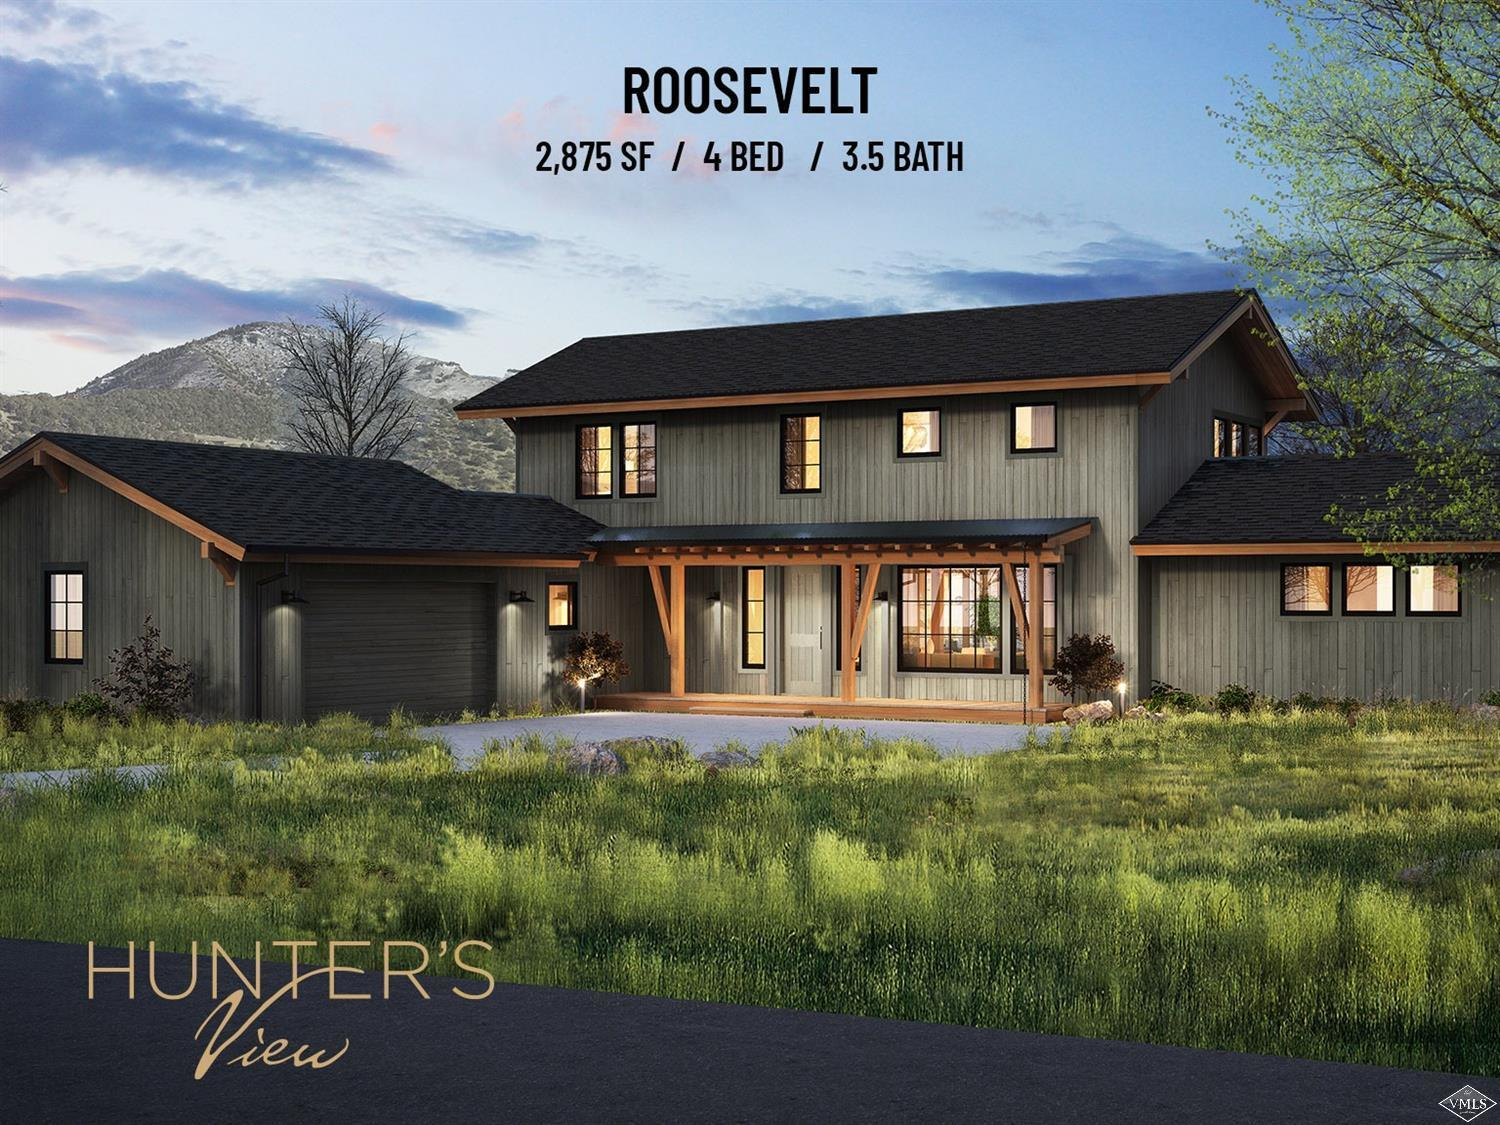 Starting Fall  of 2020 - Roosevelt Model - Hunter's View Residences - Nestled on 81 acres, surrounded by pristine wilderness, Hunter's View is Frost Creek's newest real estate offering. Phase 1 (15 homes out of 44) are thoughtfully designed new construction homes, which is perfect combination of personalization and convenience. With 3 unique layouts and numerous additions to choose from, no two residences will be exactly the same.